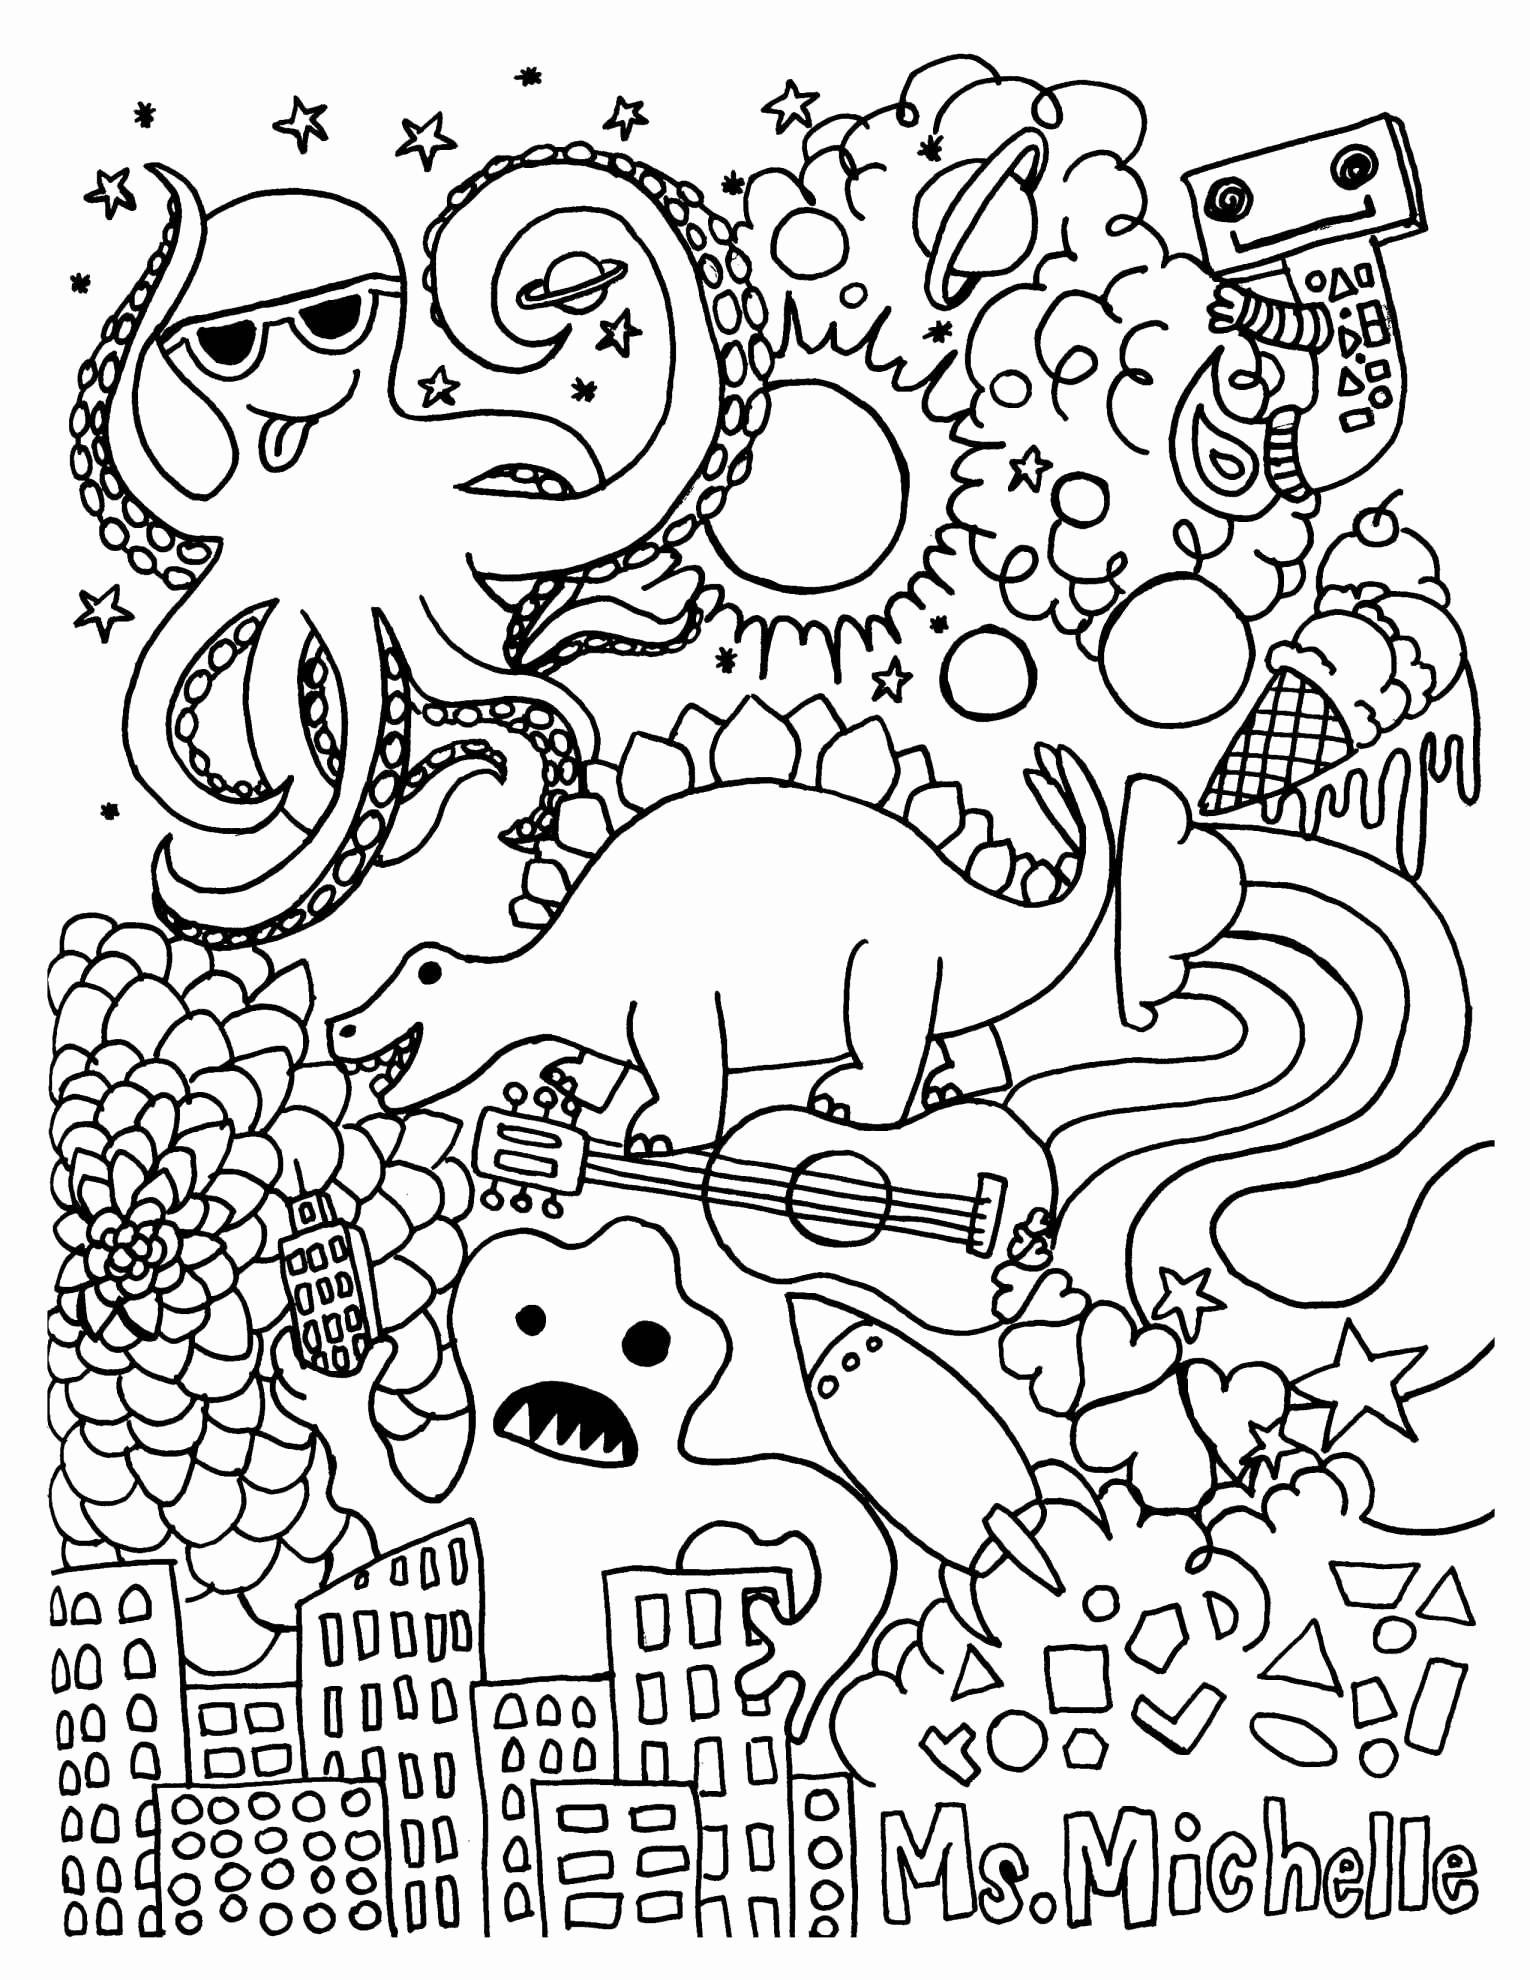 Merry Christmas And Happy New Year Coloring Pages With Card Reference Birthday For